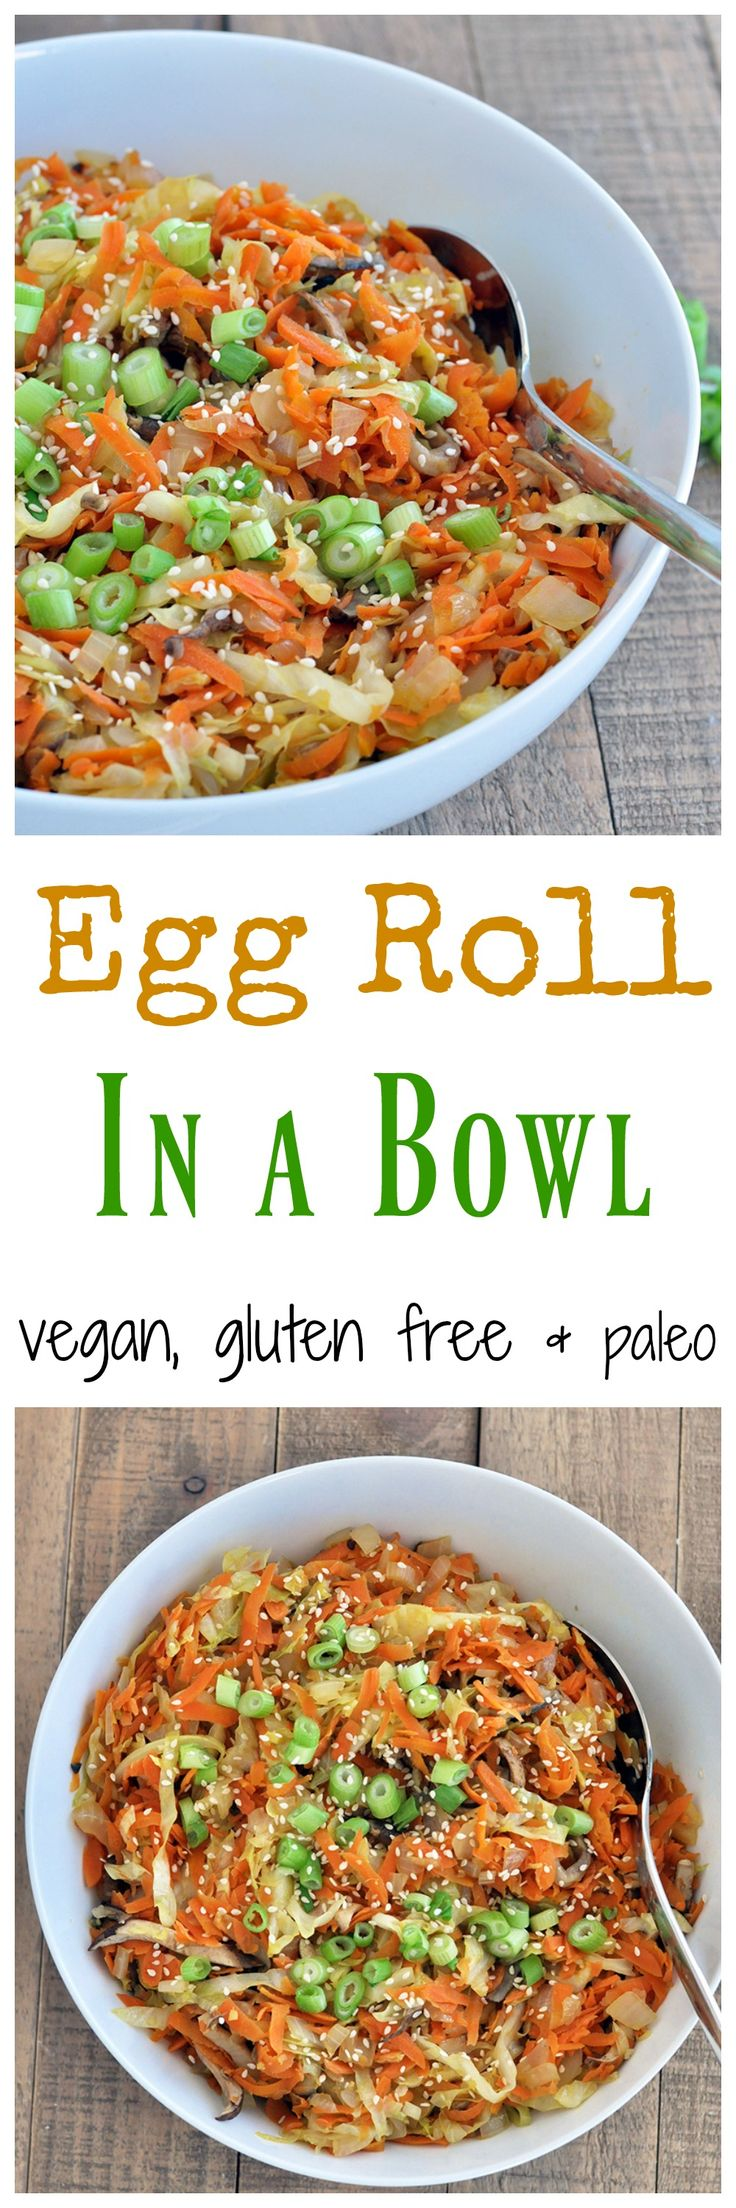 vegan egg roll in a bowl. Ingredients: cabbage, carrots, mushrooms, onion, garlic, sesame oil, coconut aminos, ginger, salt, green onions (optional)